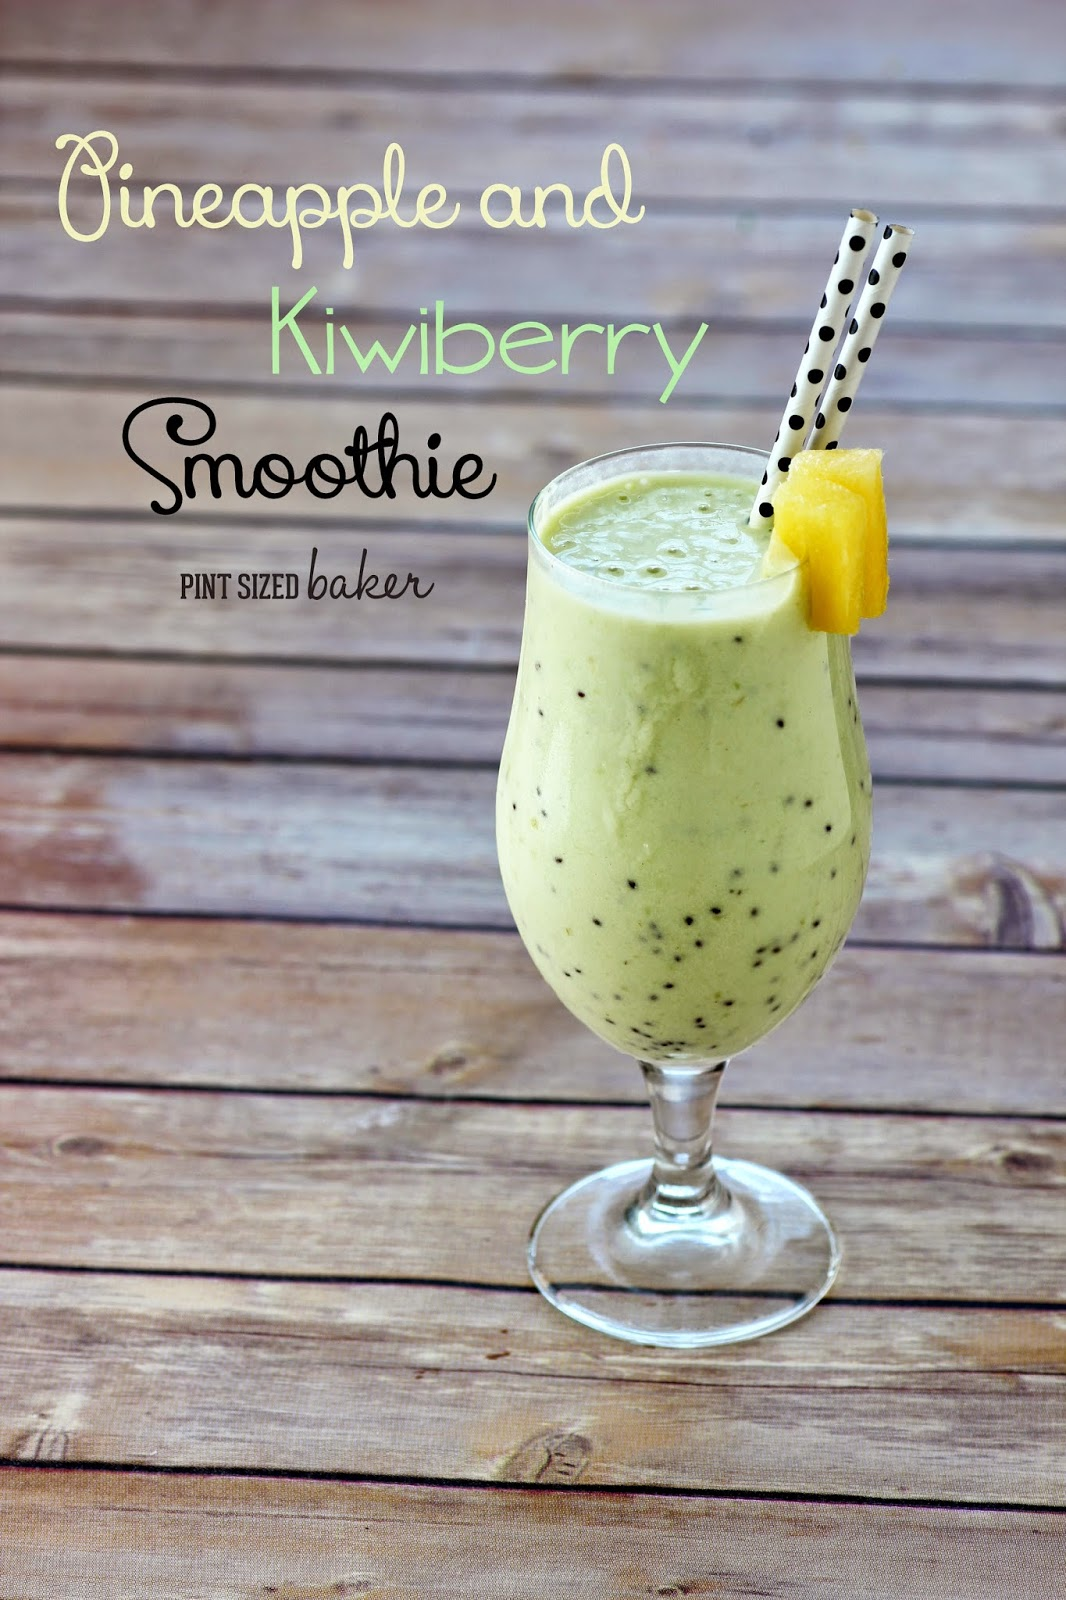 Pineapple and Kiwiberry Protein Smoothie [Pint Sized Baker]